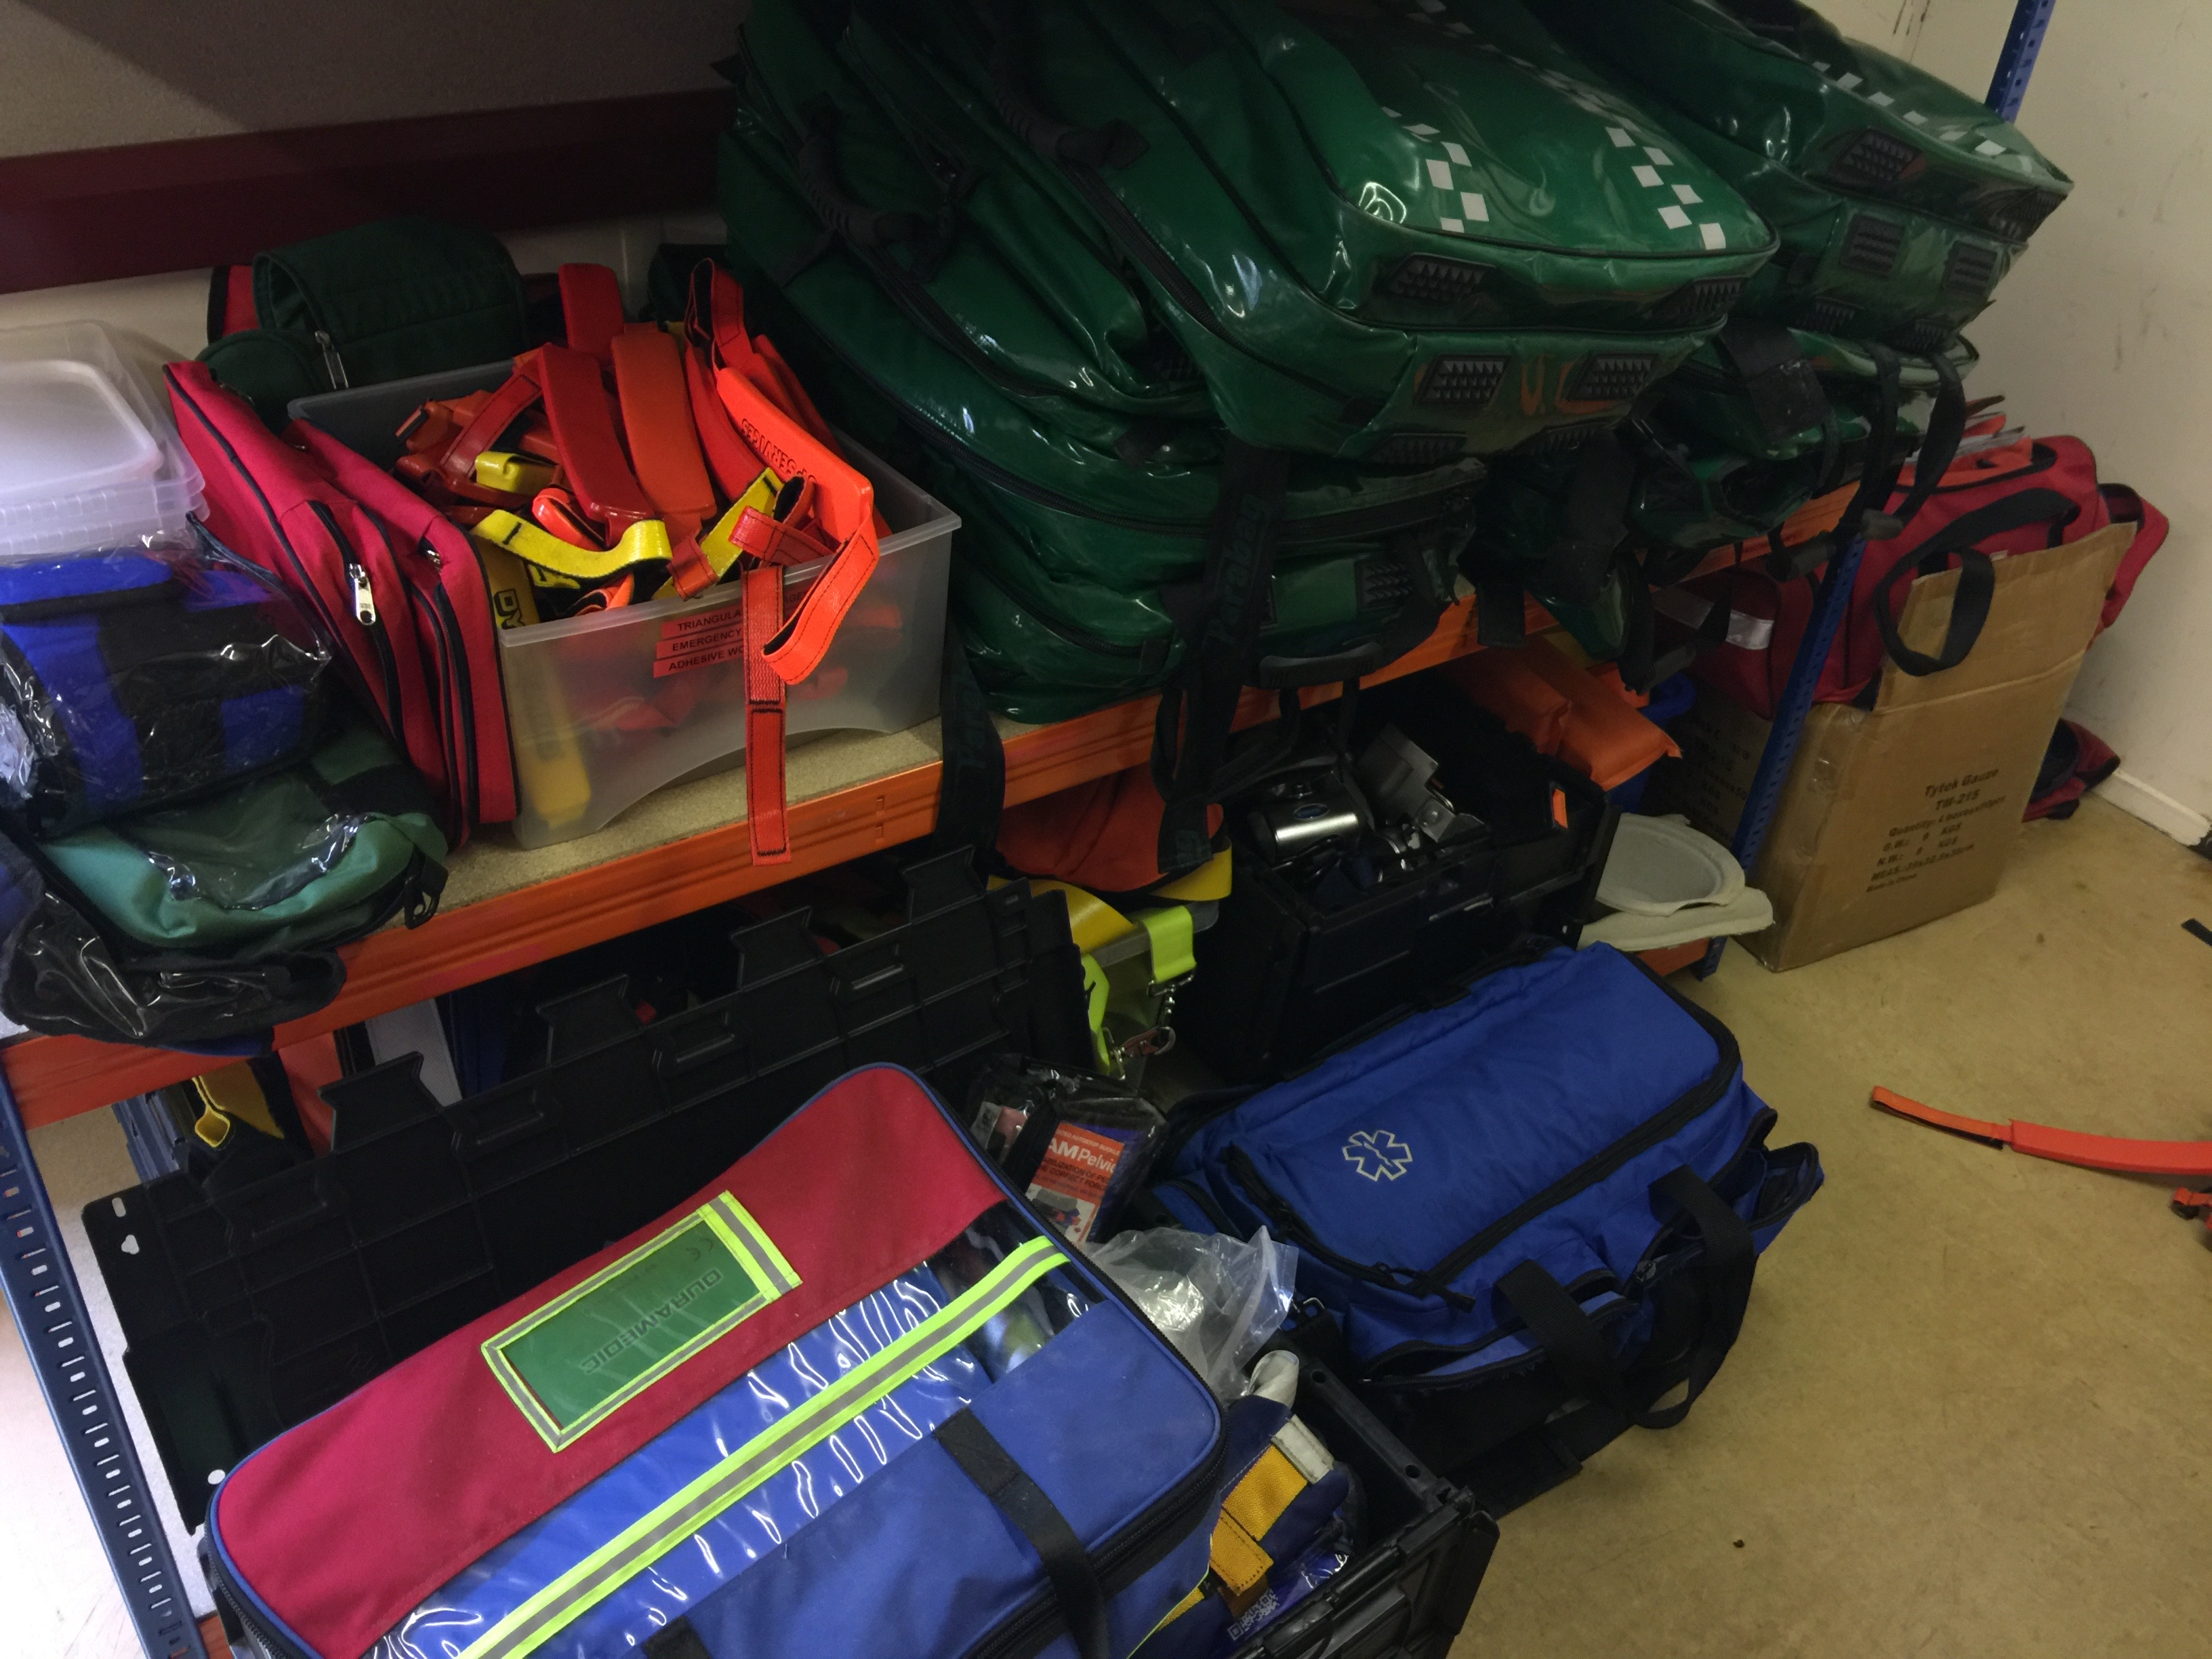 Lot 29 - Contents to single bay rack mainly assorted Paramedic, Oxygen, Entonox and medical bags (rack not